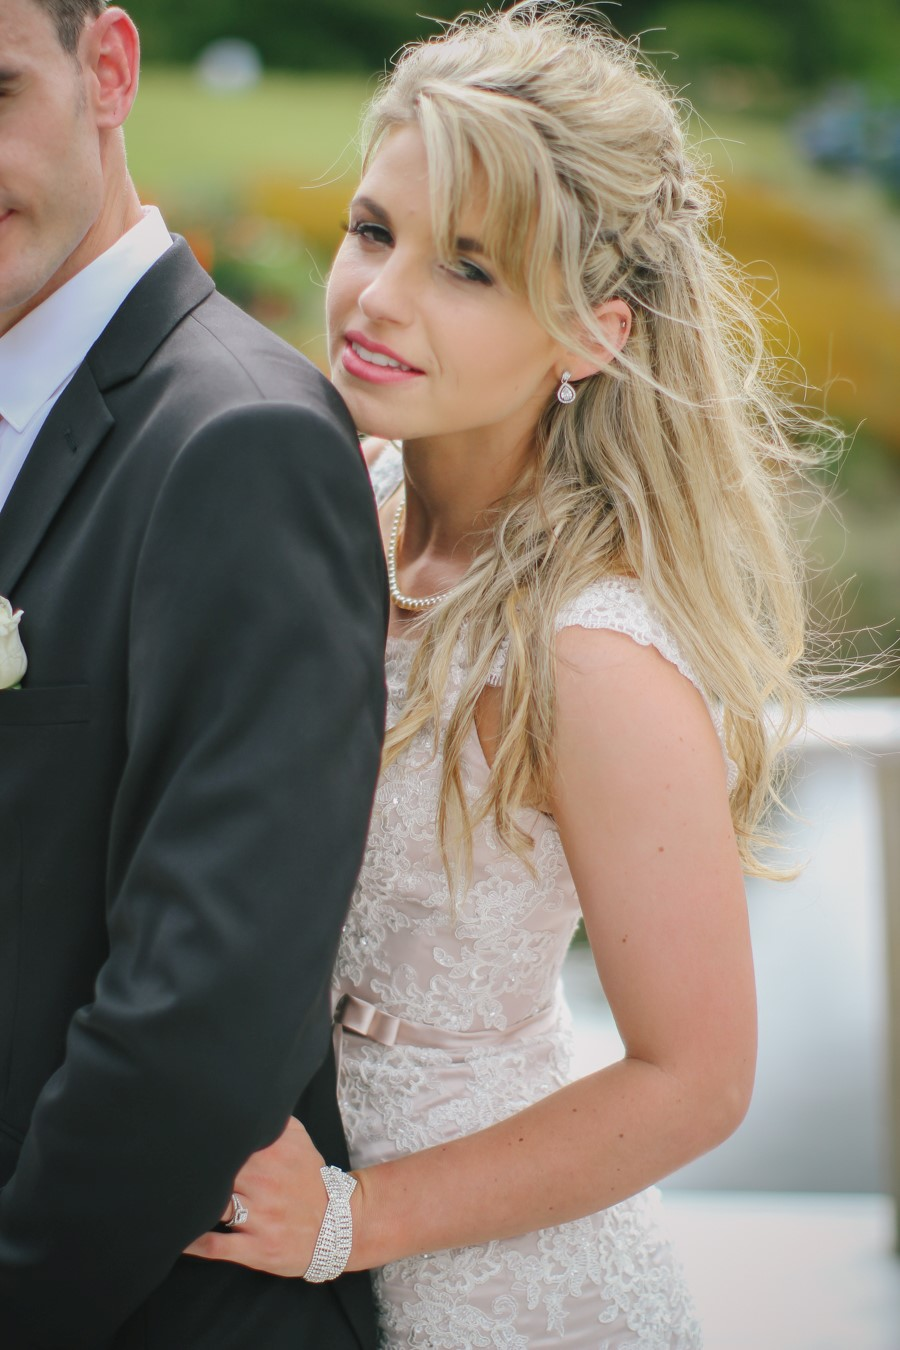 silverdale_wedding_nz_photographer-168